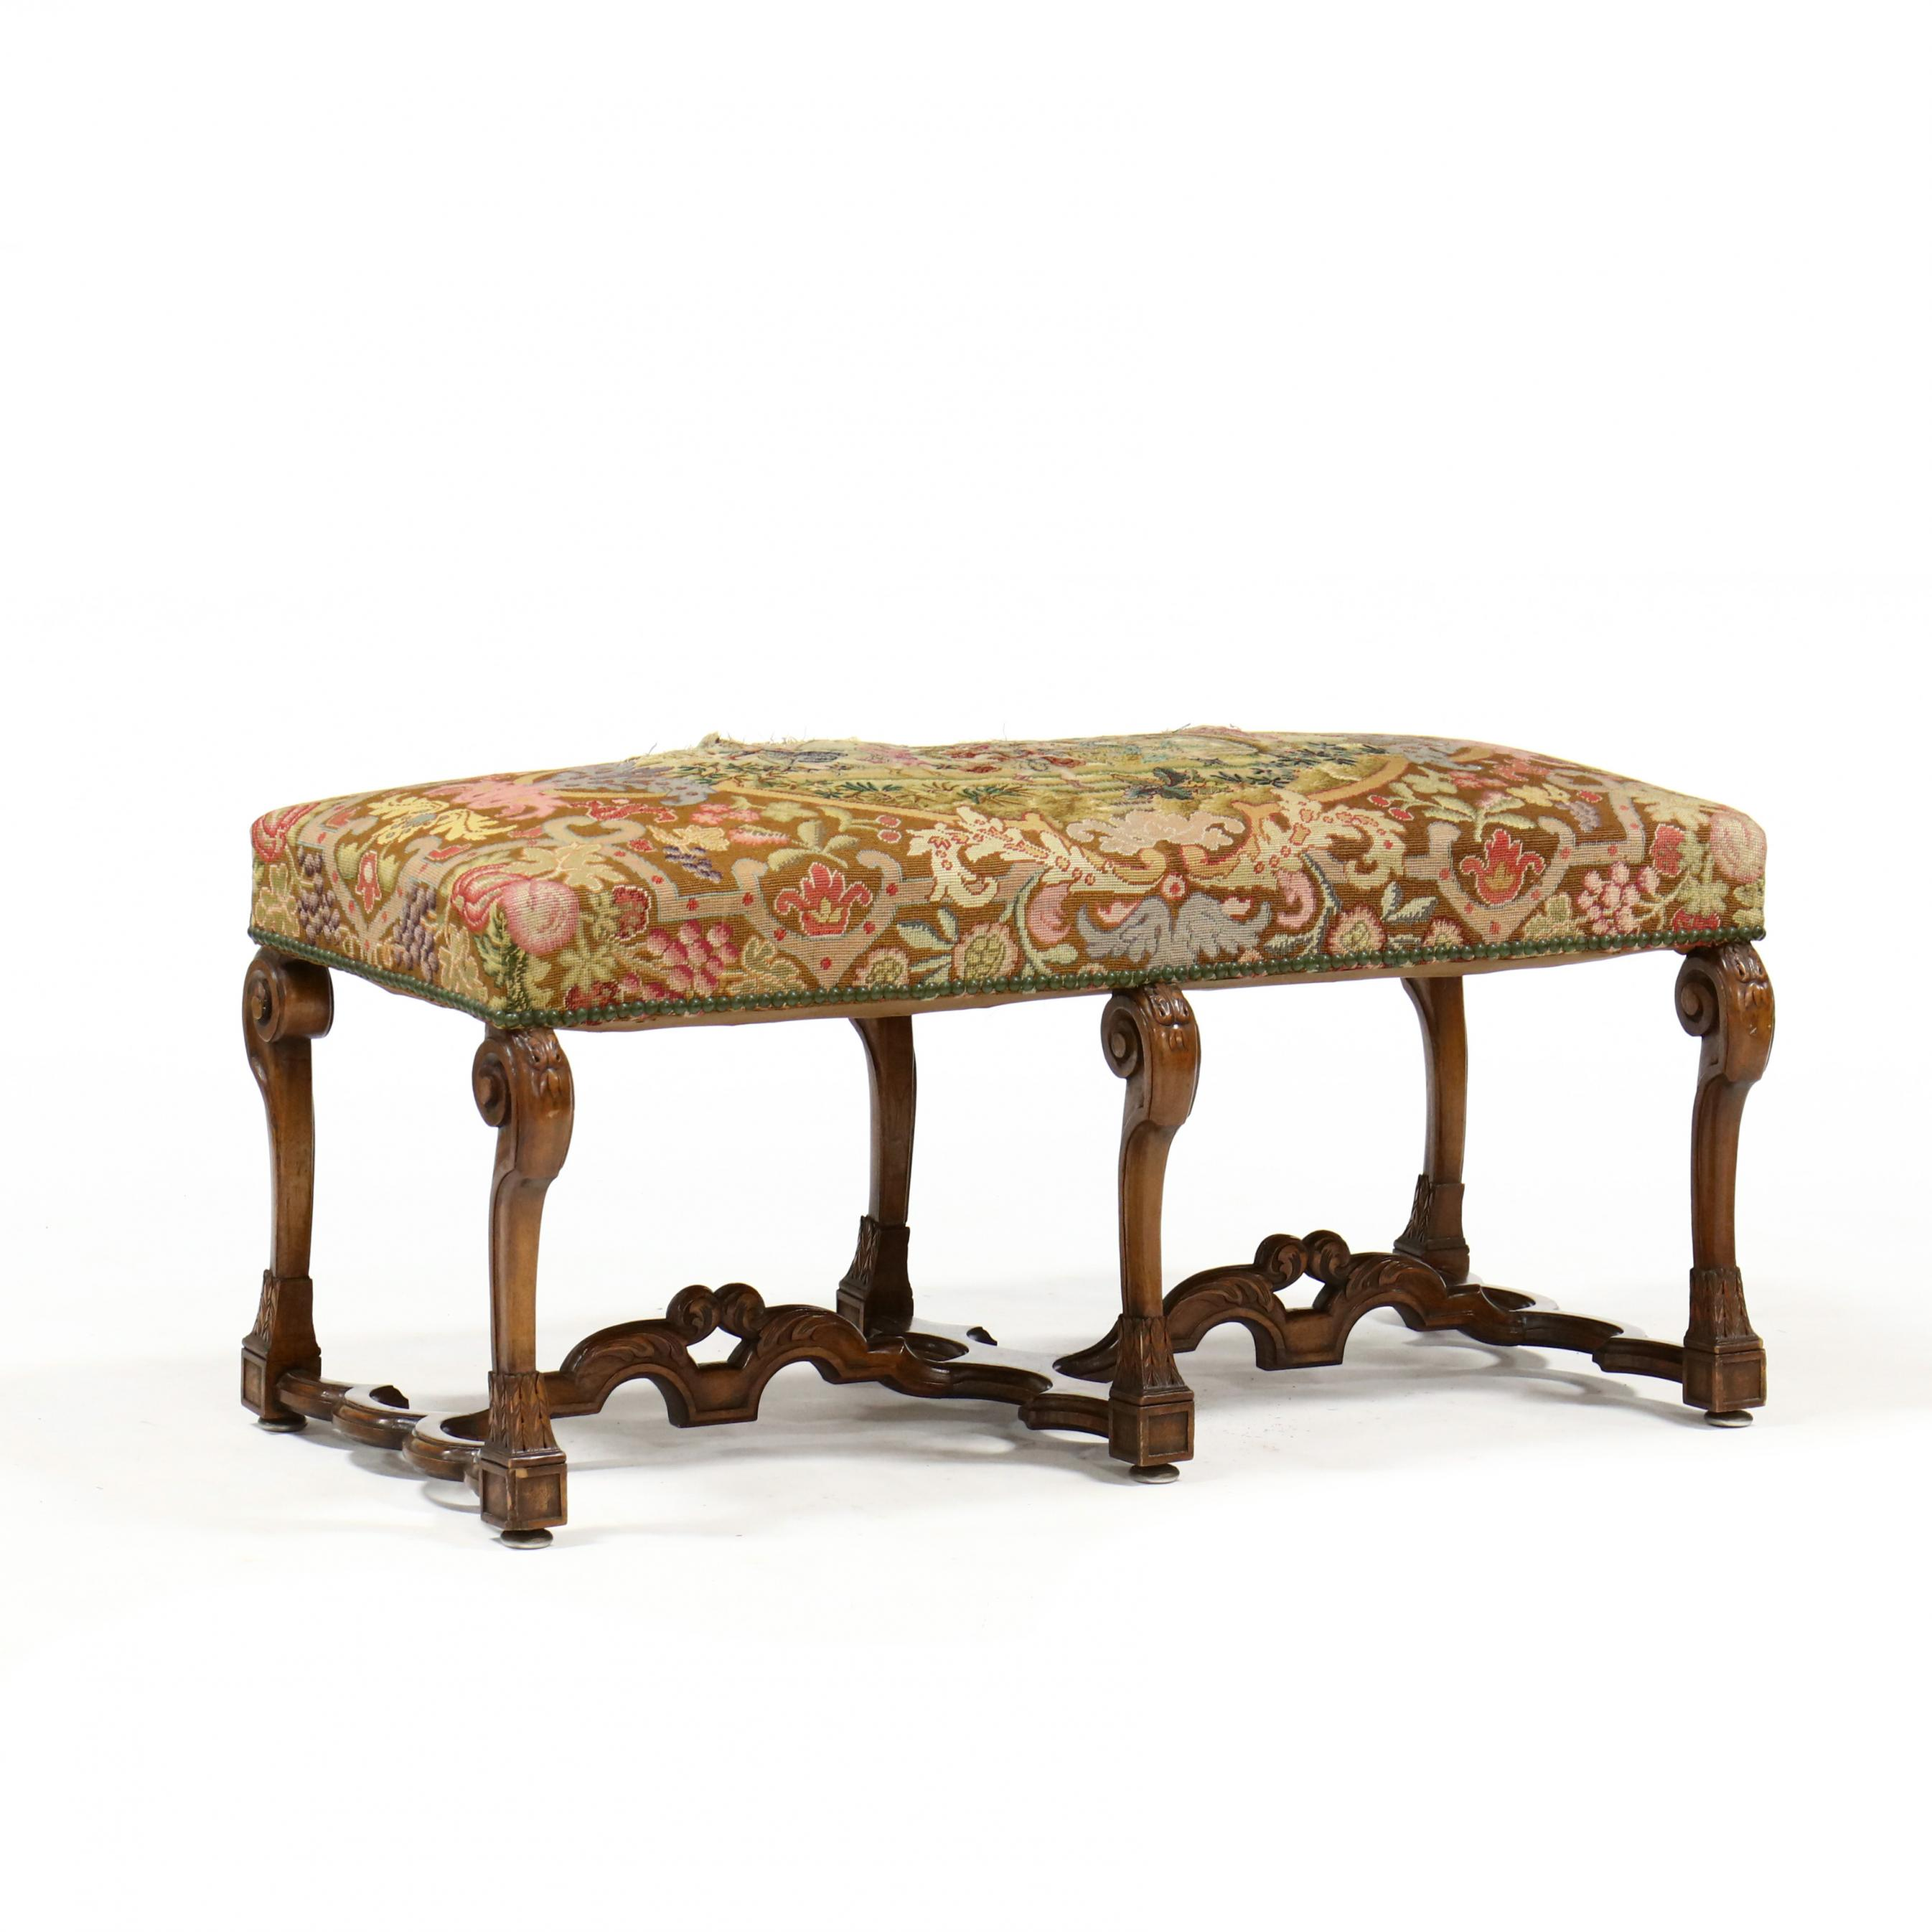 italian-baroque-style-carved-walnut-upholstered-bench